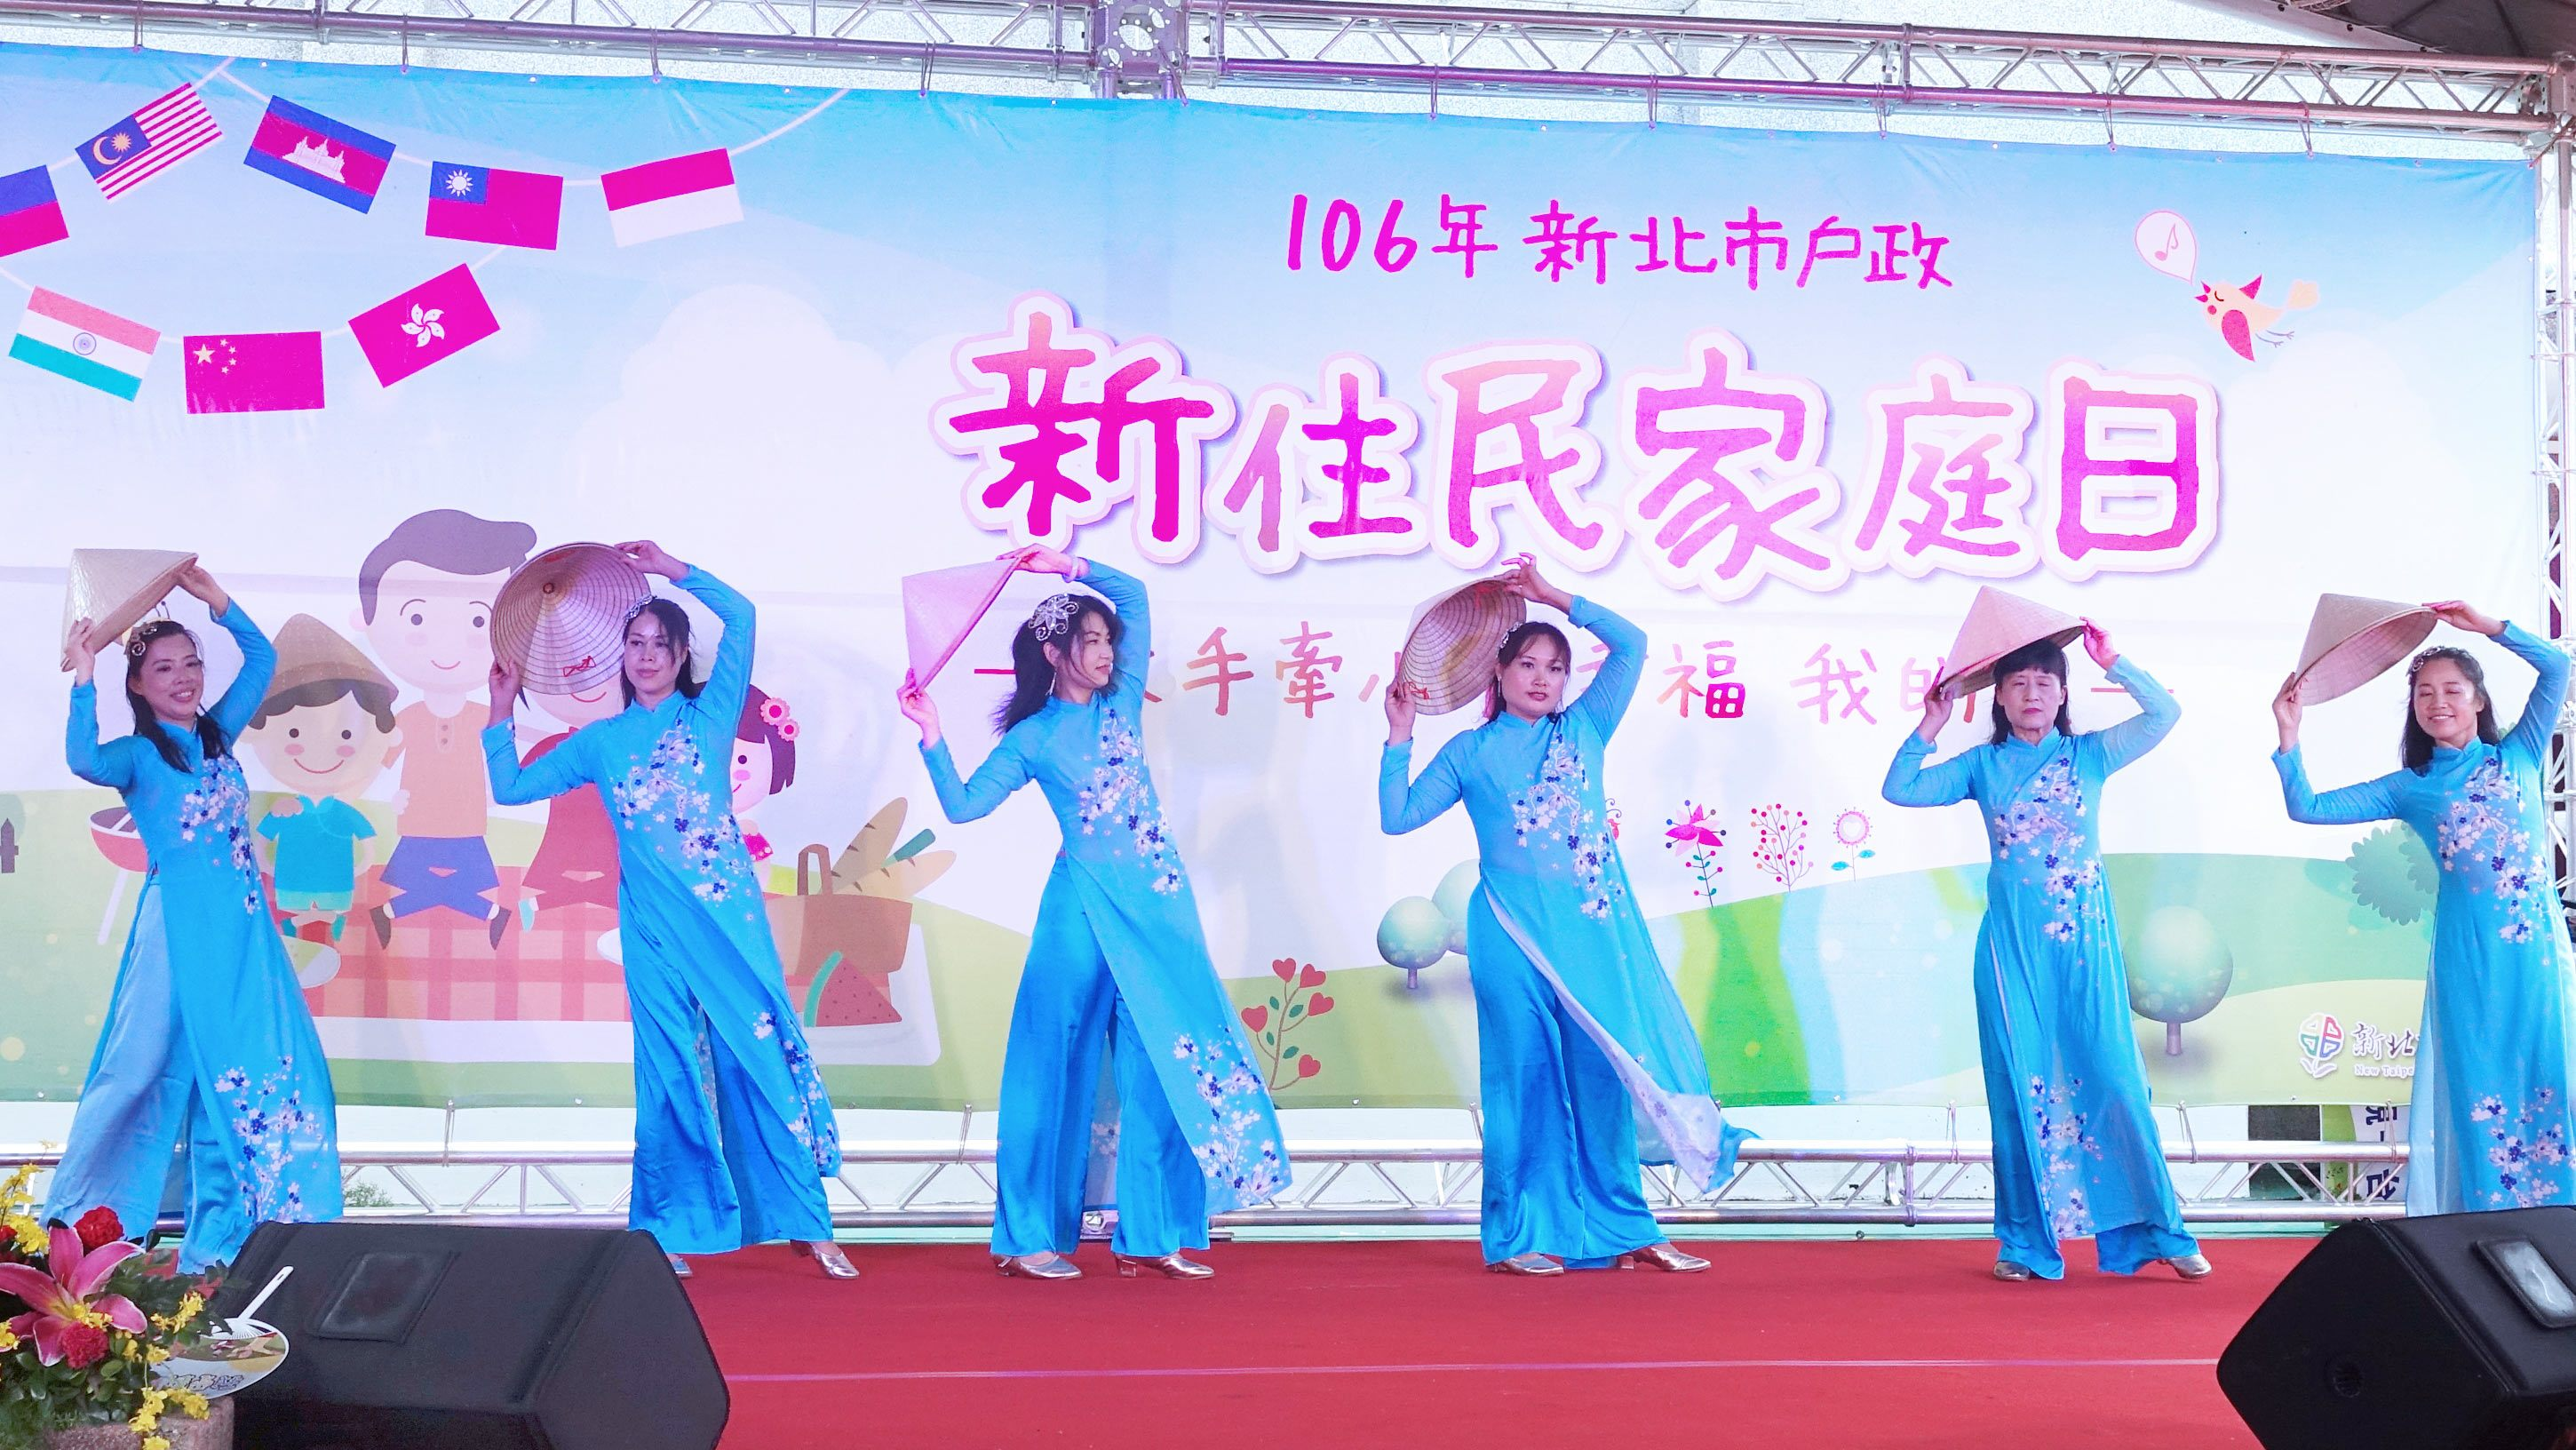 JW Dance Group put a show on Vietnamese Traditional Dance